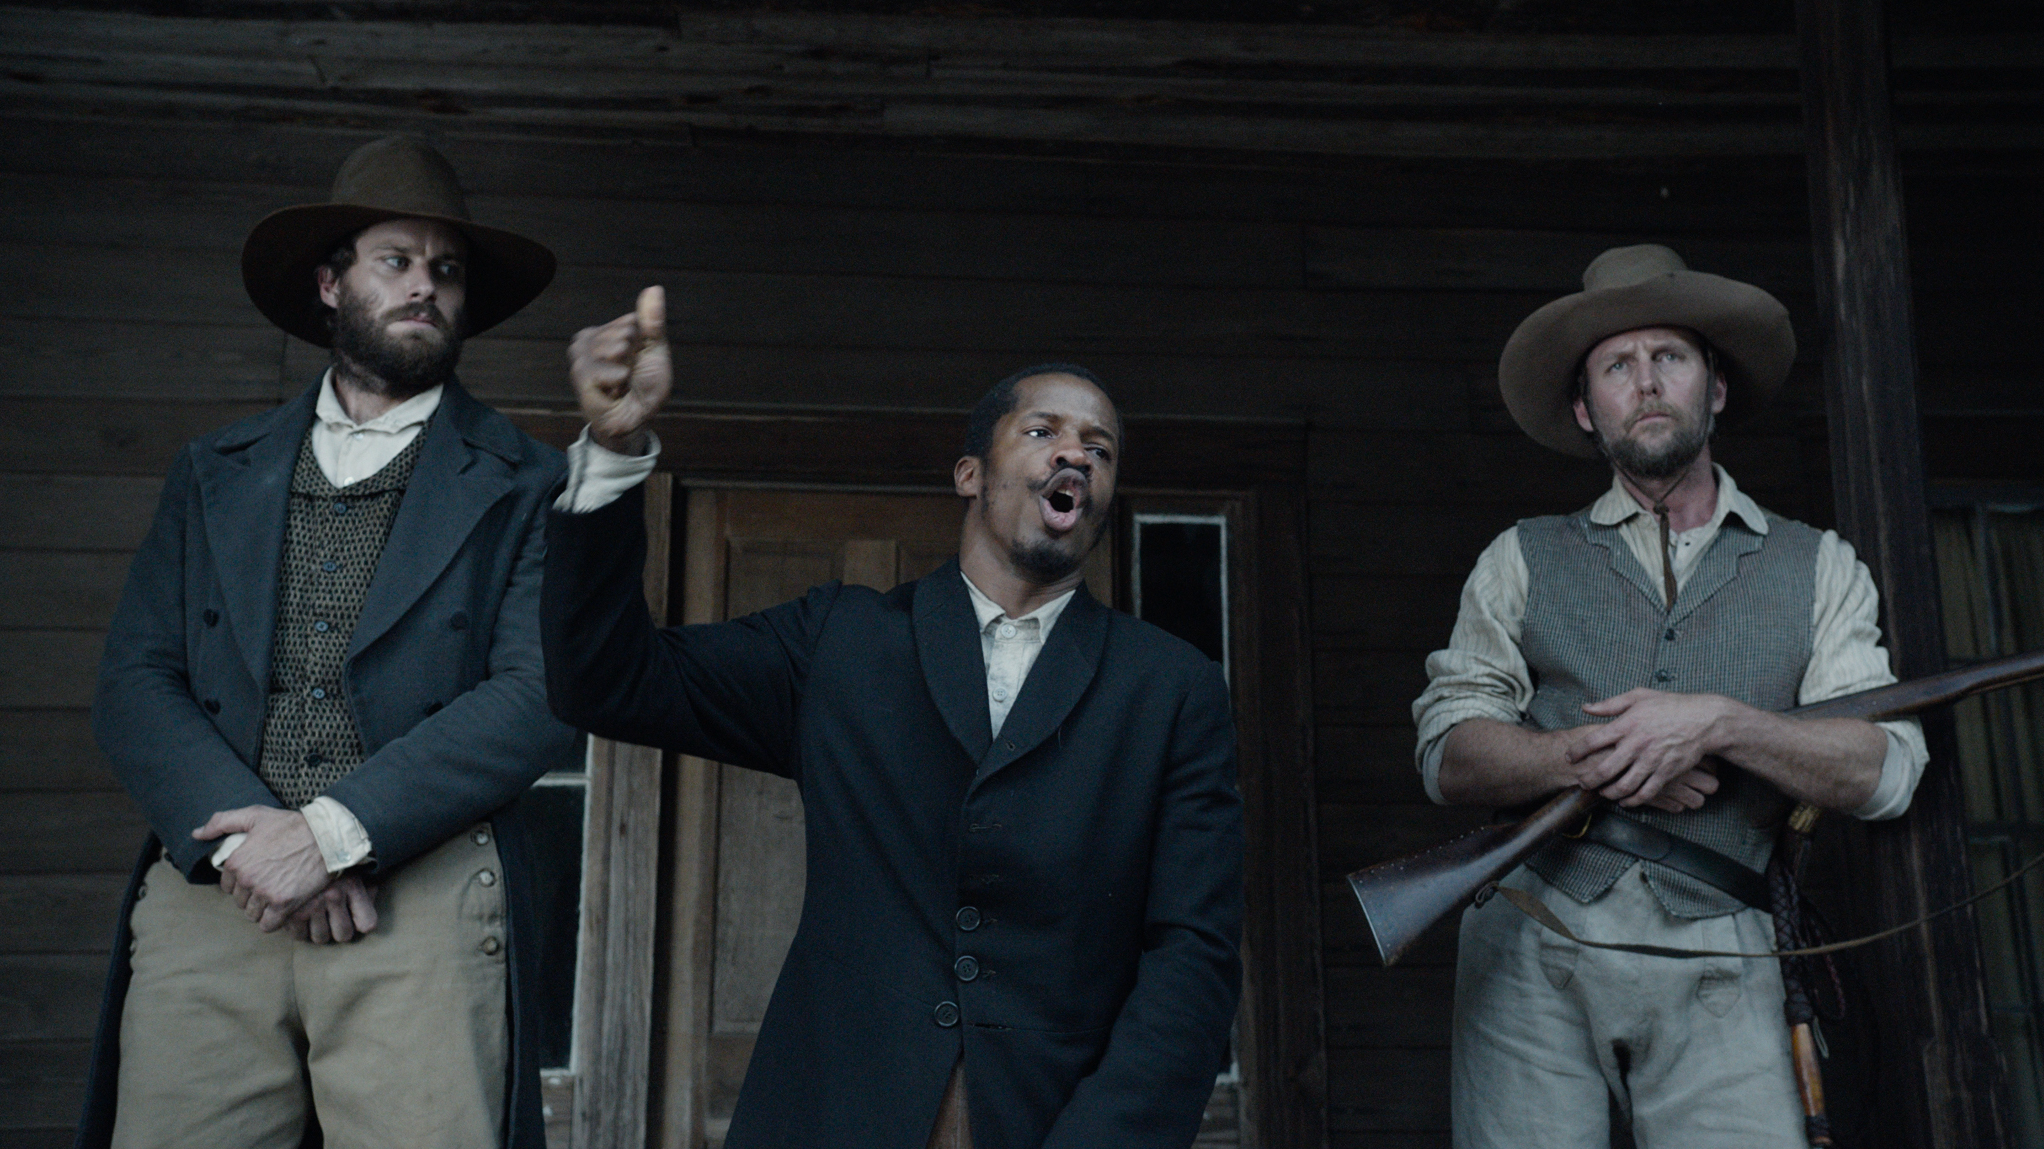 Sexual Assault Activists To Protest 'The Birth Of A Nation'